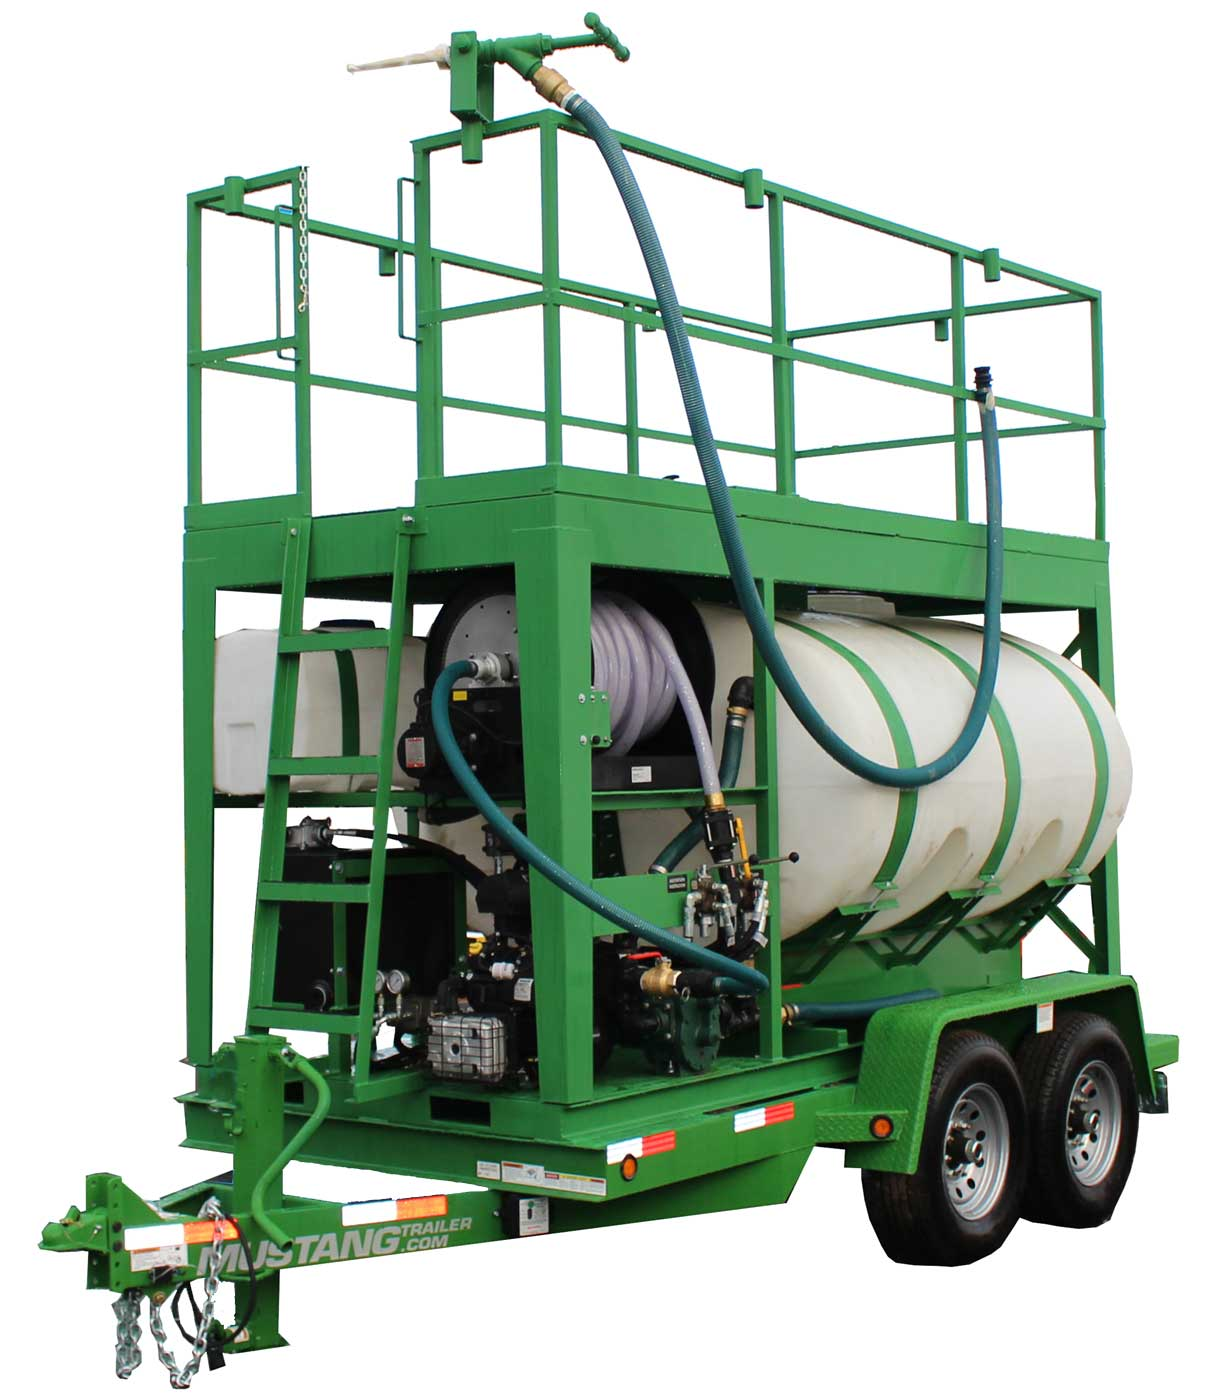 Turbo Turf HM-1000-HARV hydroseeder right front view